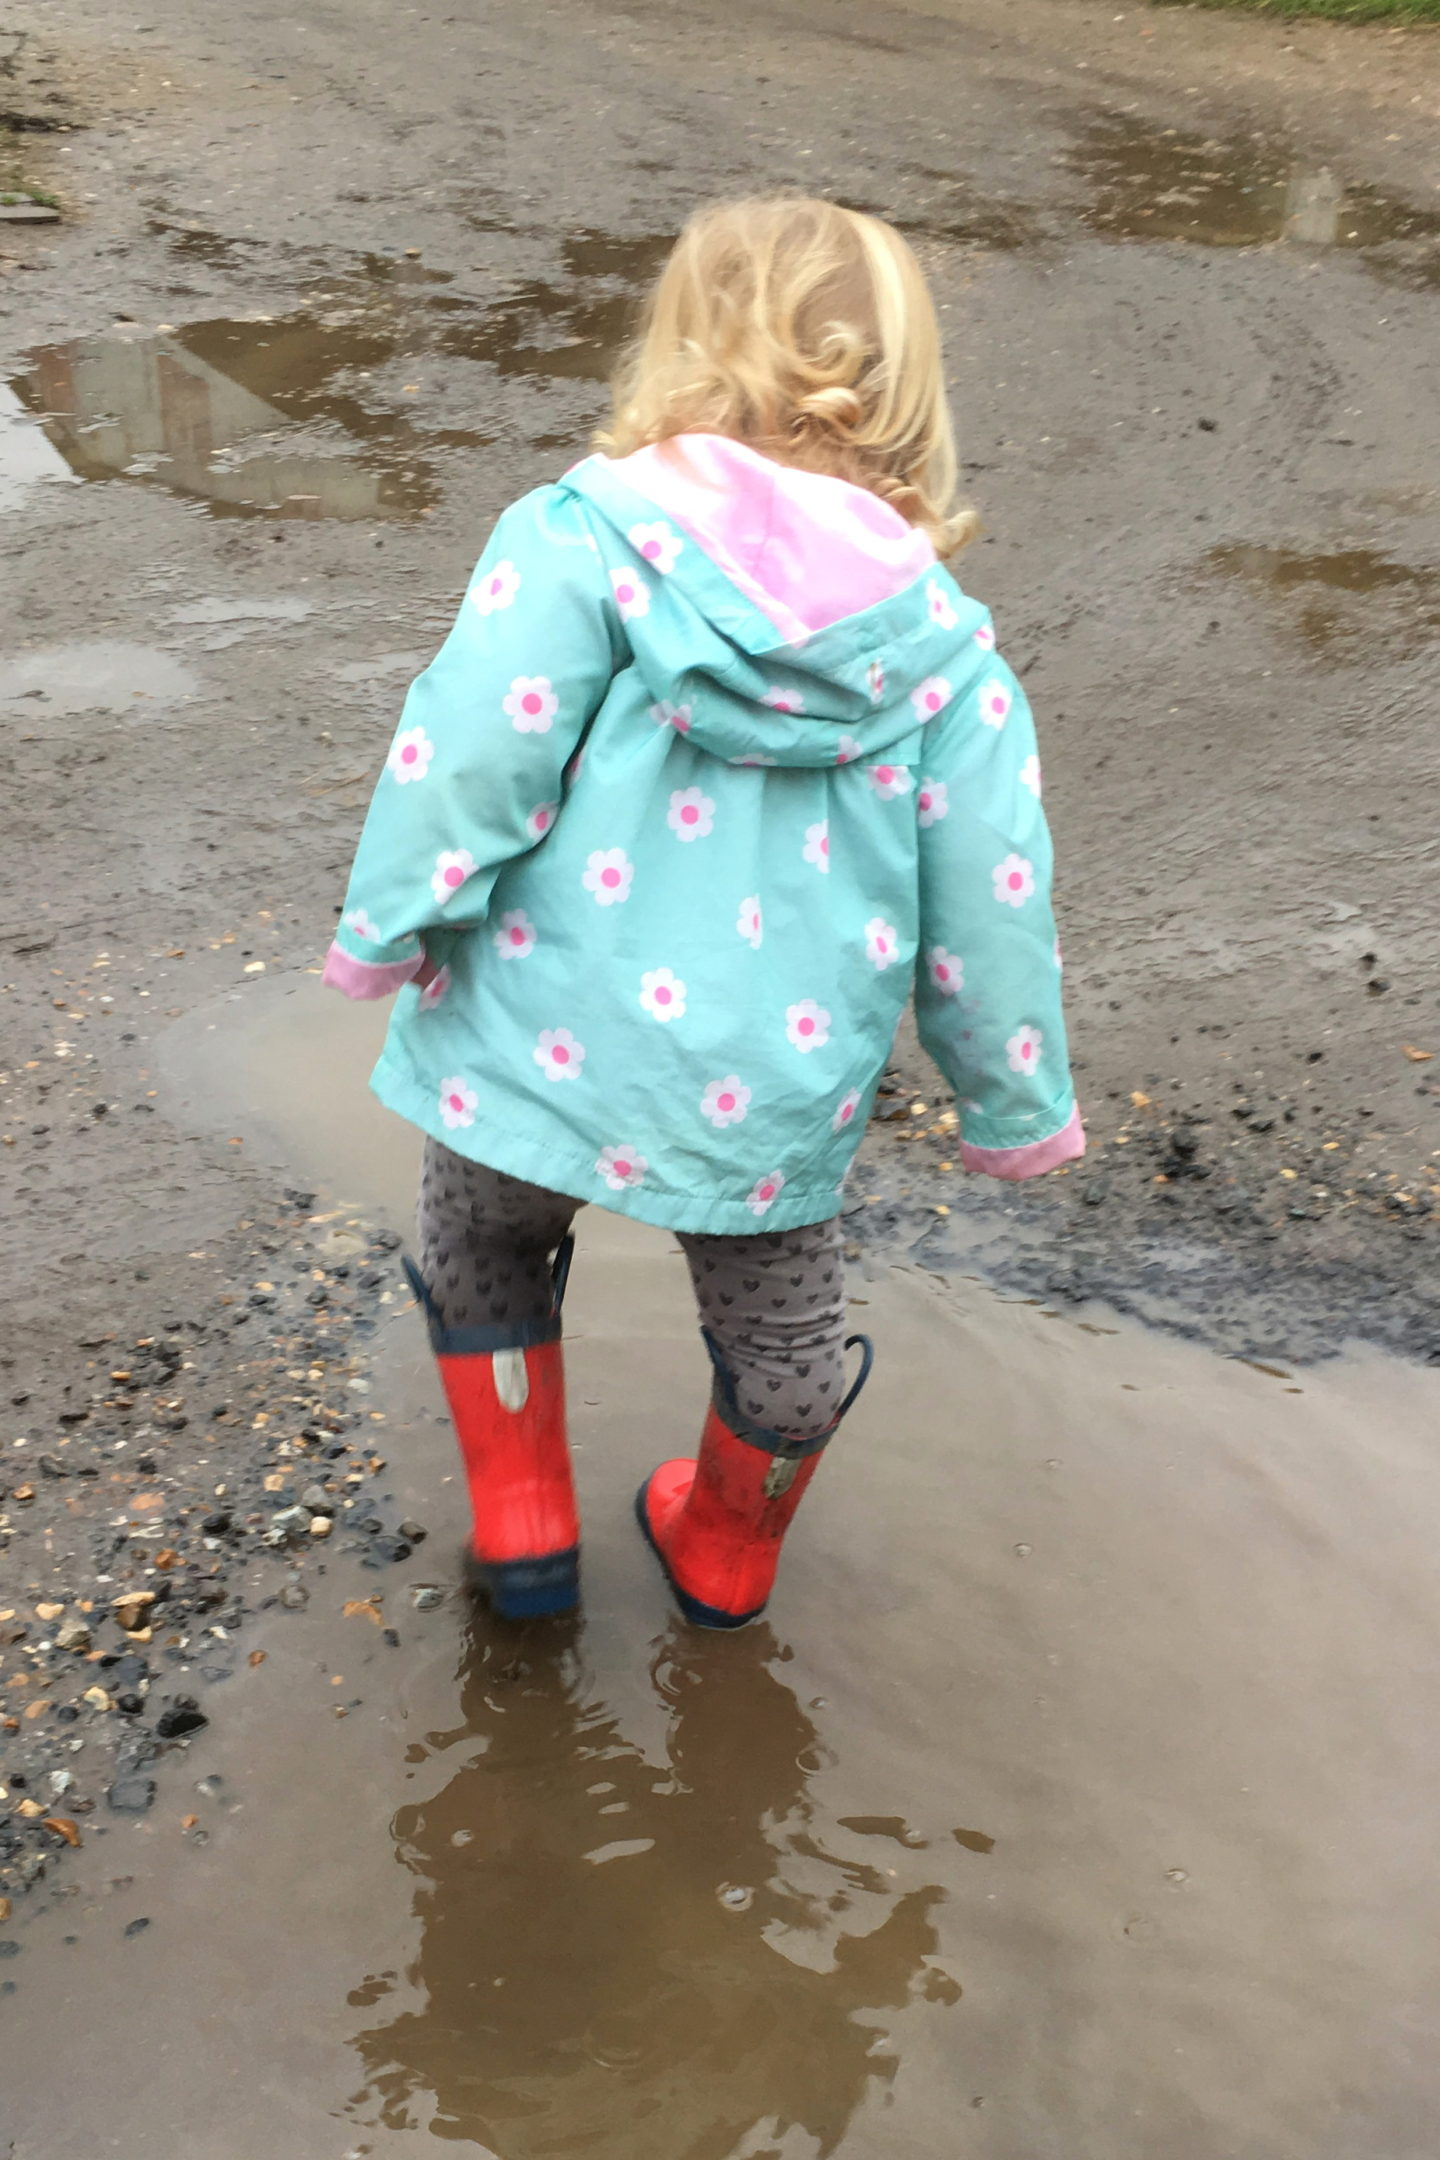 22 months old girl splashing in puddles in red wellies